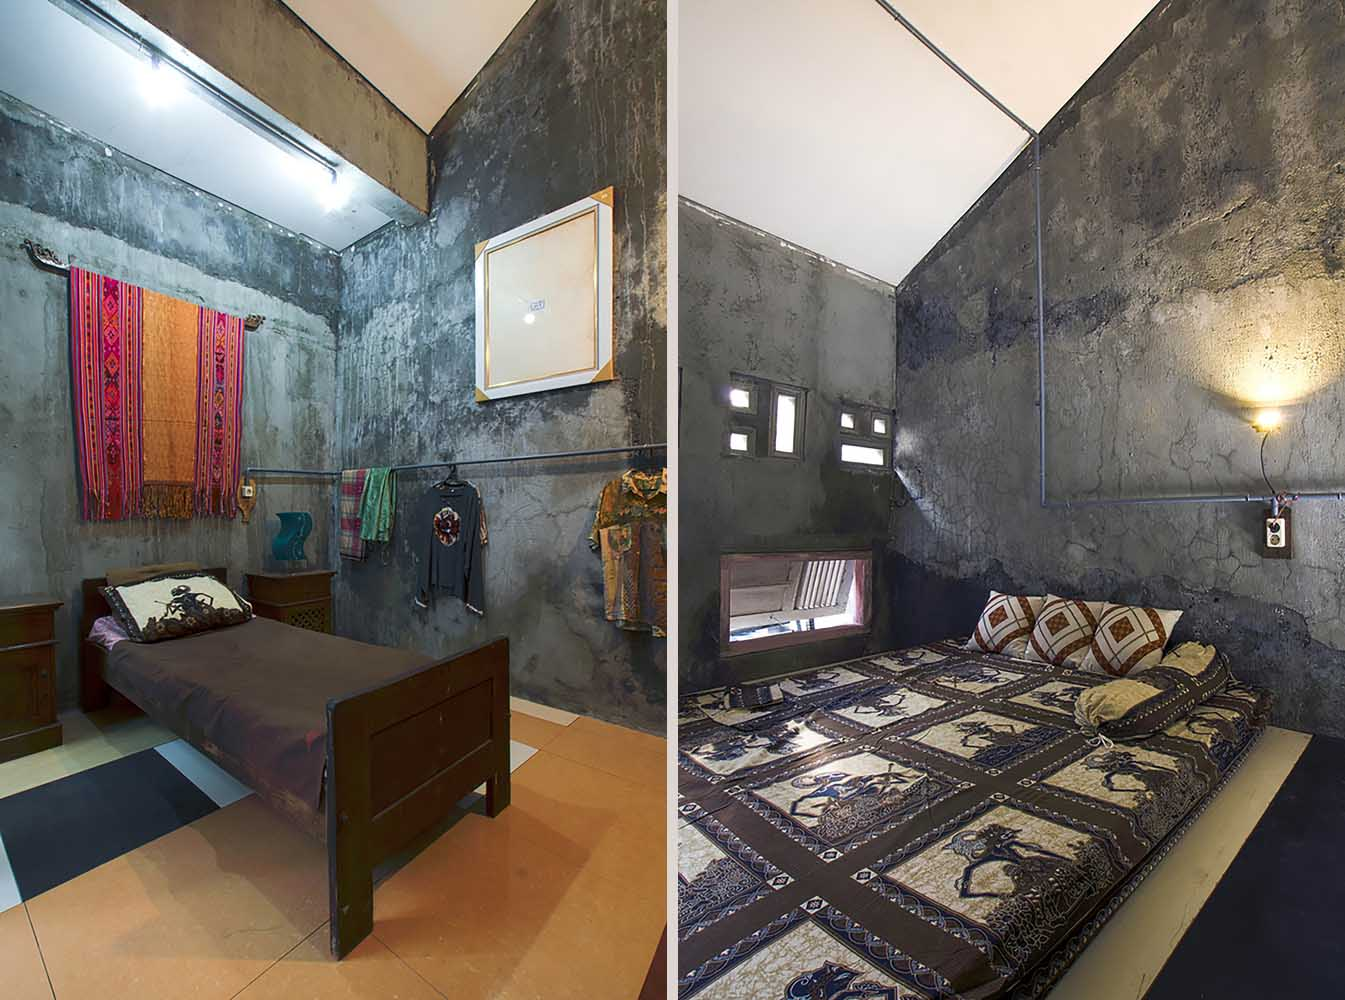 Kamar tidur Omah Amoh (Sumber: archdaily.com)